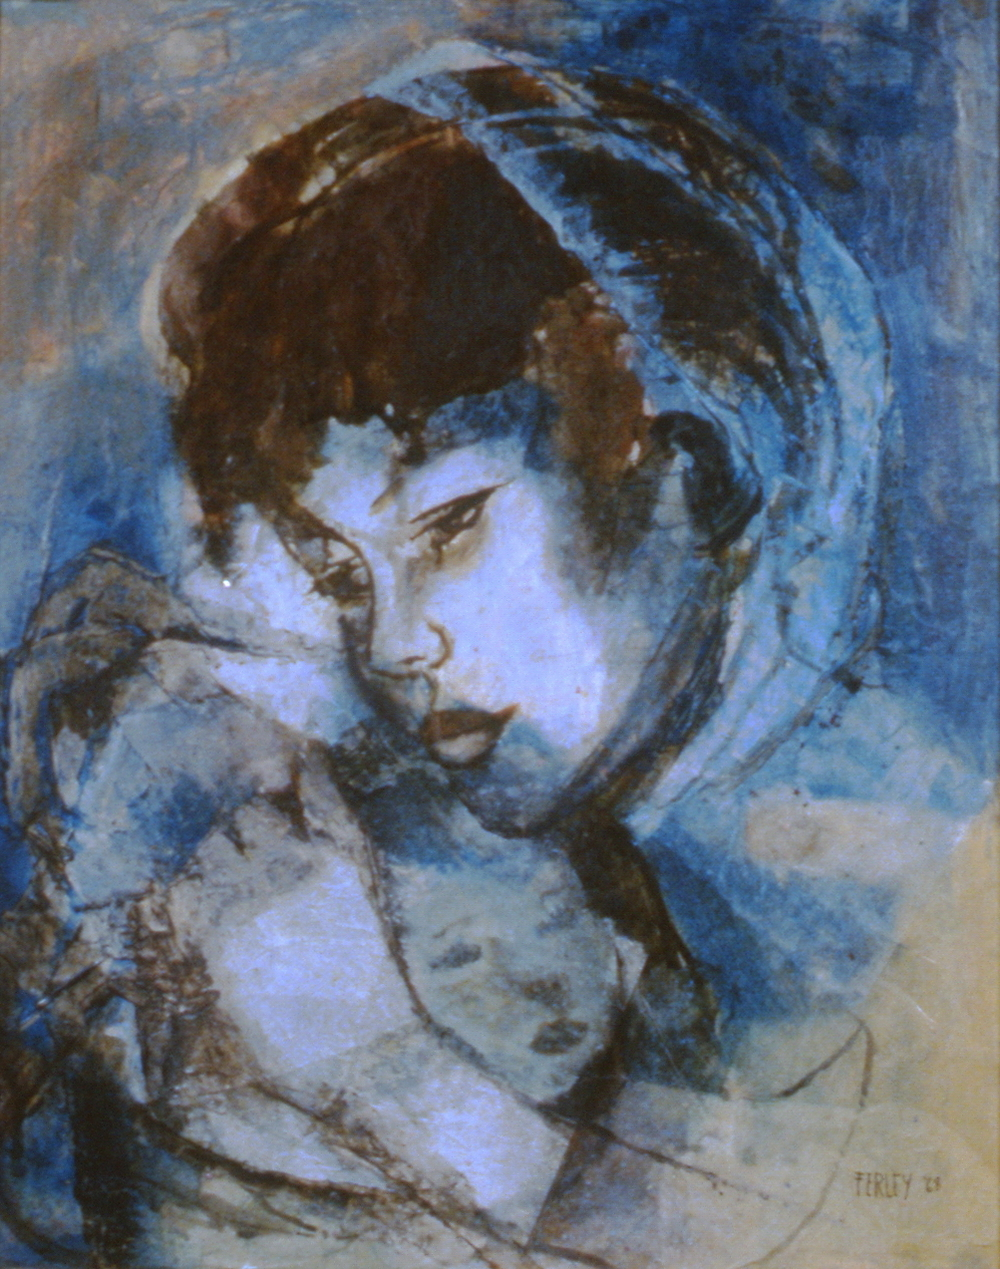 Madonna, 1968, Muriel Ferley, acrylic collage, 30 cm x 39.5 cm, 1968.01.02,  gift of an anonymous Art Club member